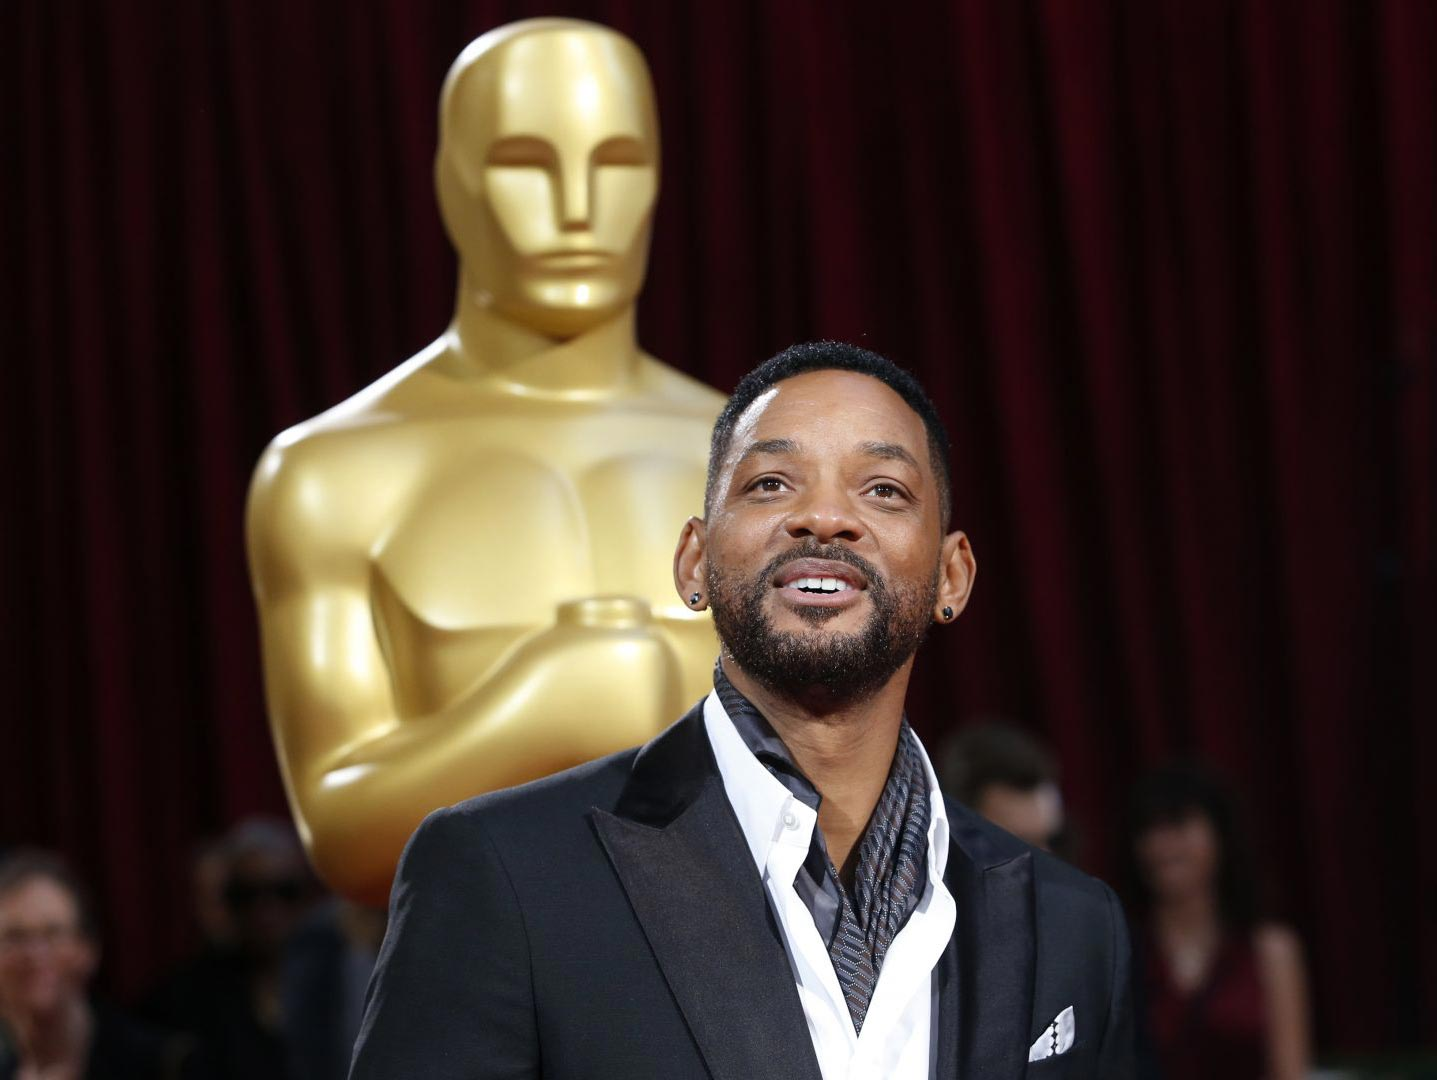 Will Smith negocia con Disney interpretar al genio en la nueva 'Aladdin'